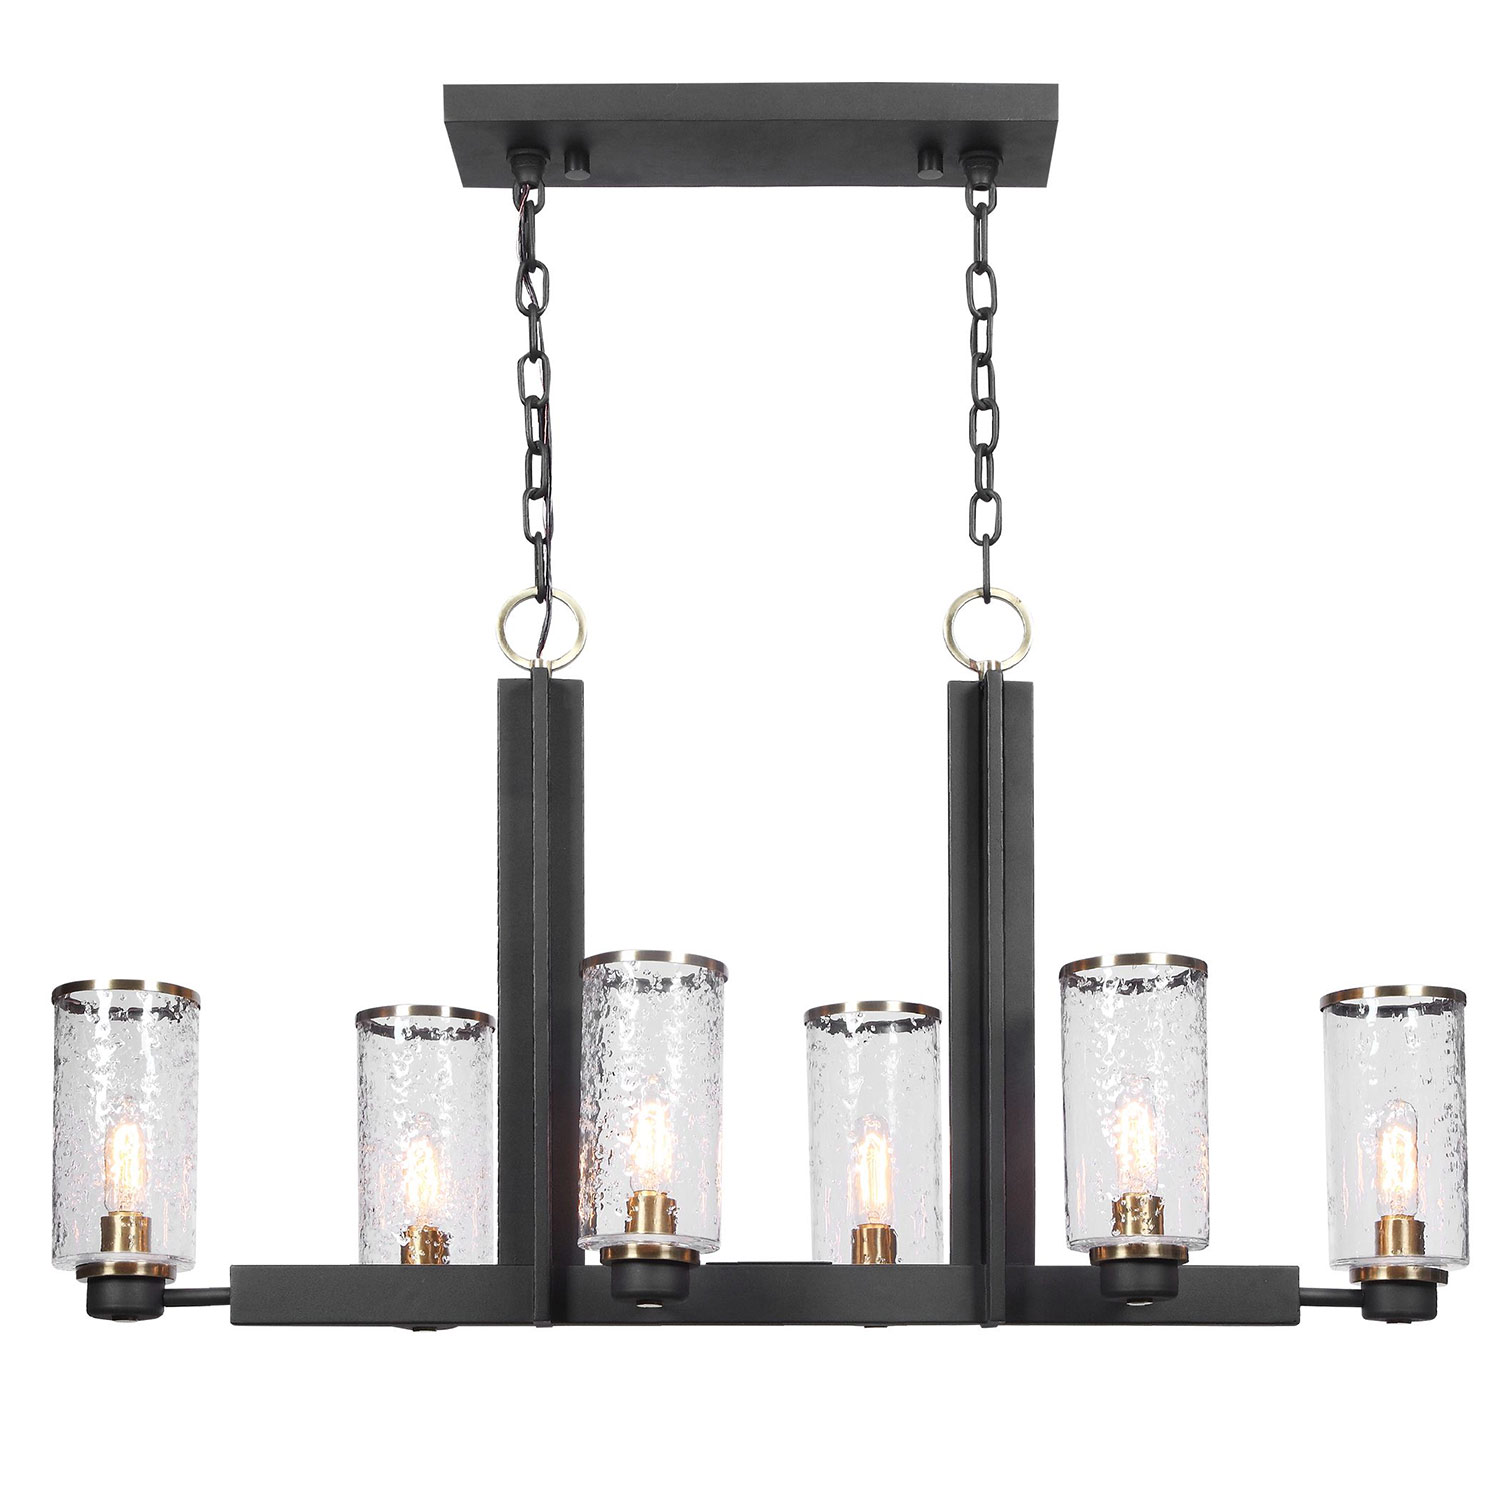 Uttermost Jarsdel 6 Light Industrial Island Light